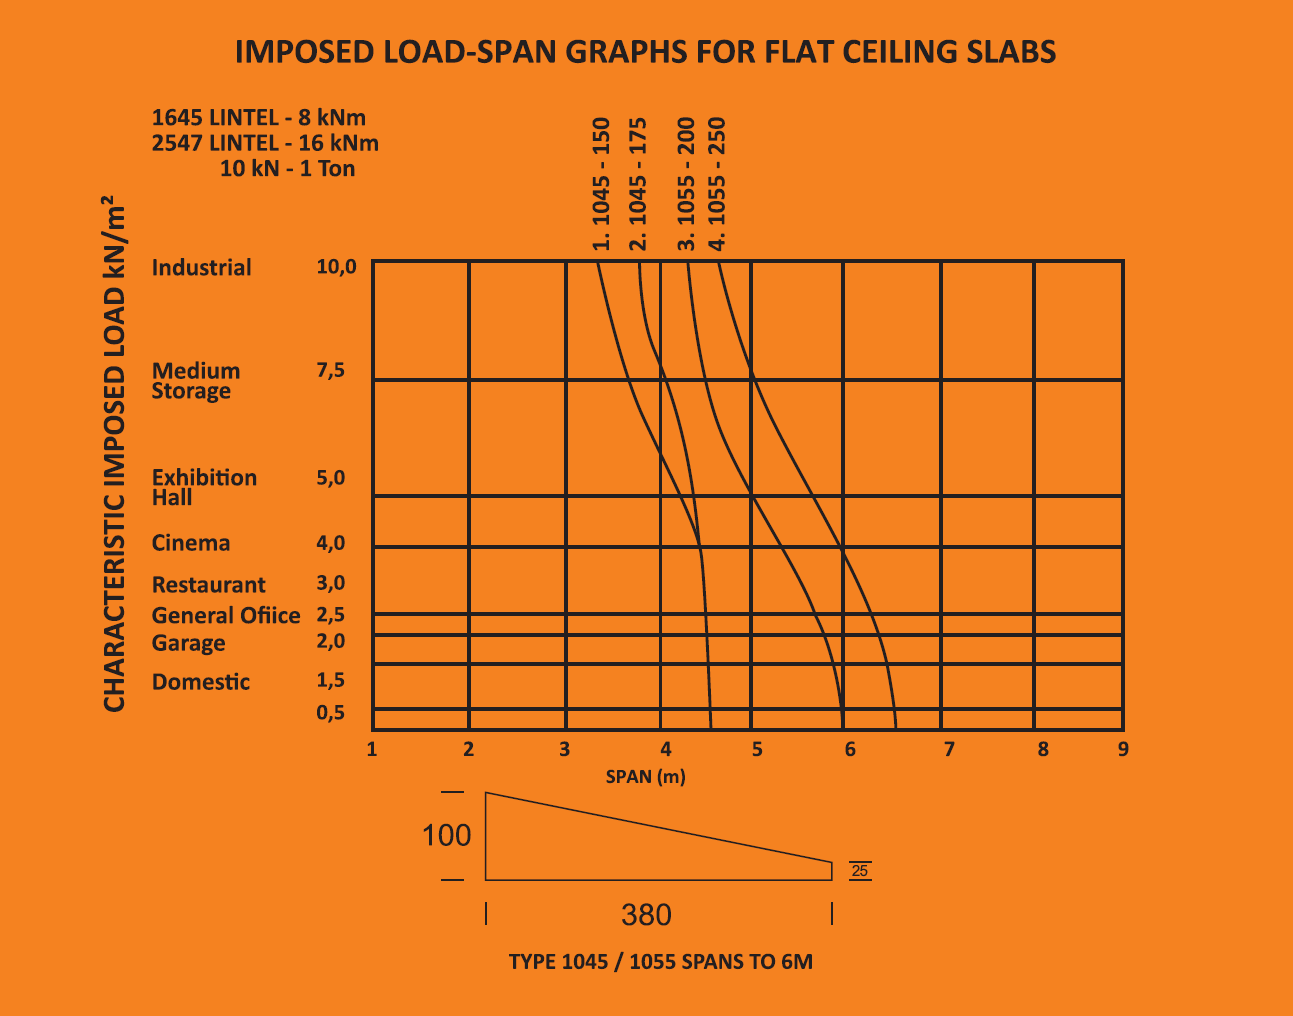 Flat Slab specifications